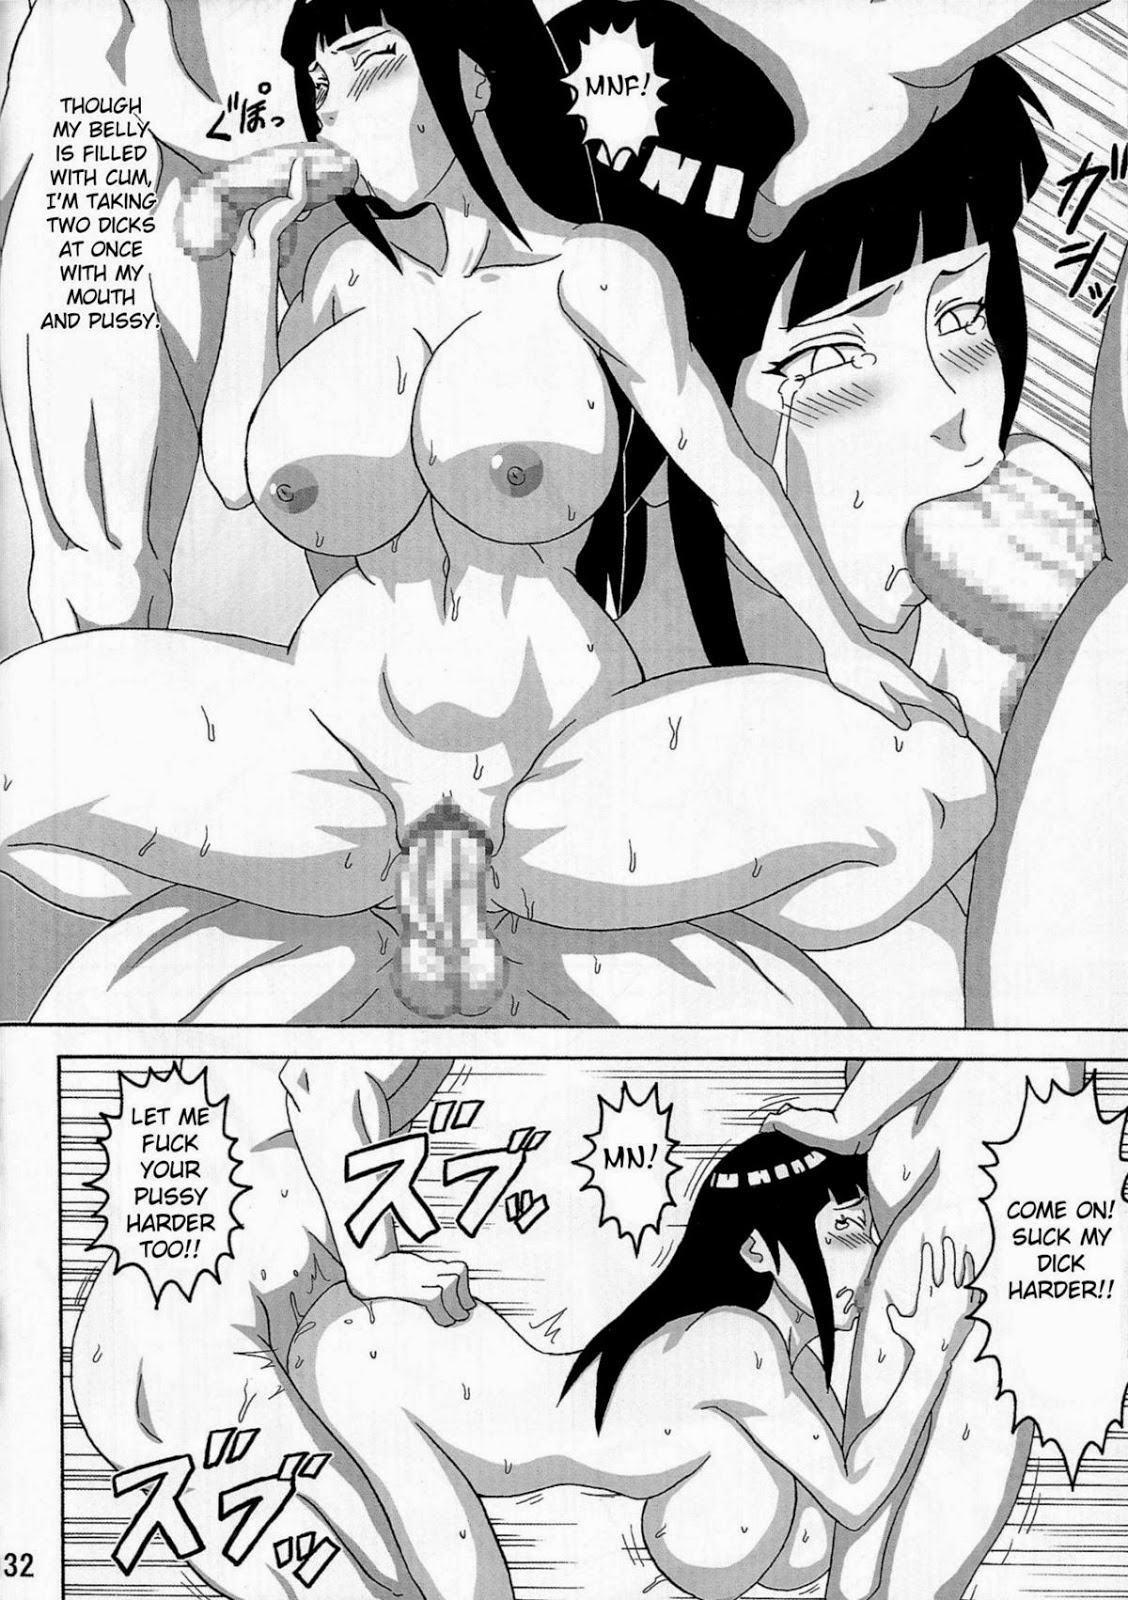 huge breasts ehentai